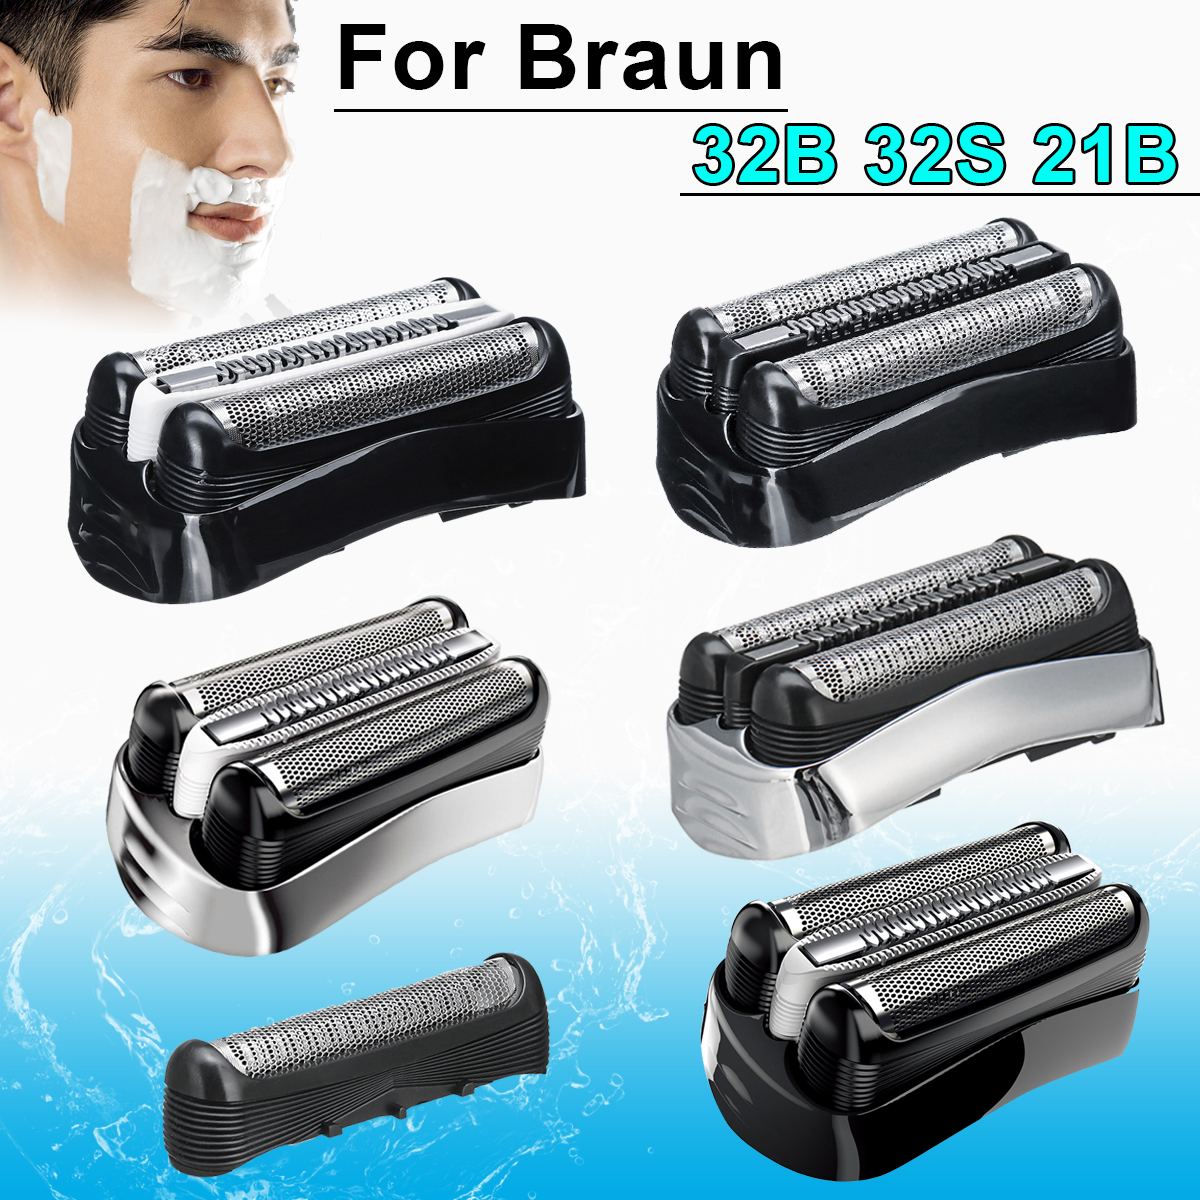 Replacement Foil Head For Braun 32B 32S 21B Series